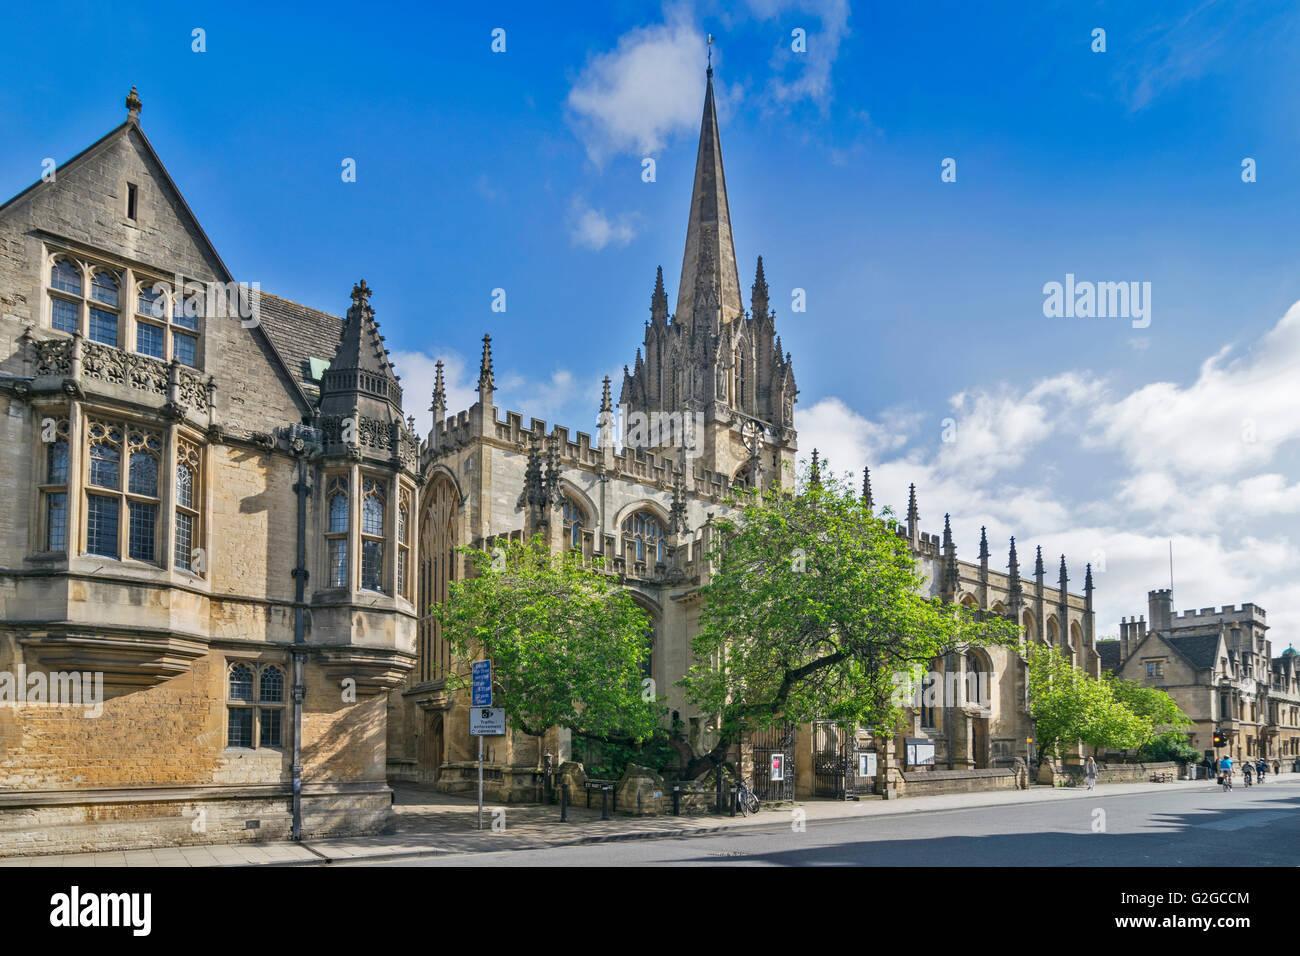 BRASENOSE COLLEGE HIGH STREET OXFORD AND ST MARY THE VIRGIN CHURCH - Stock Image